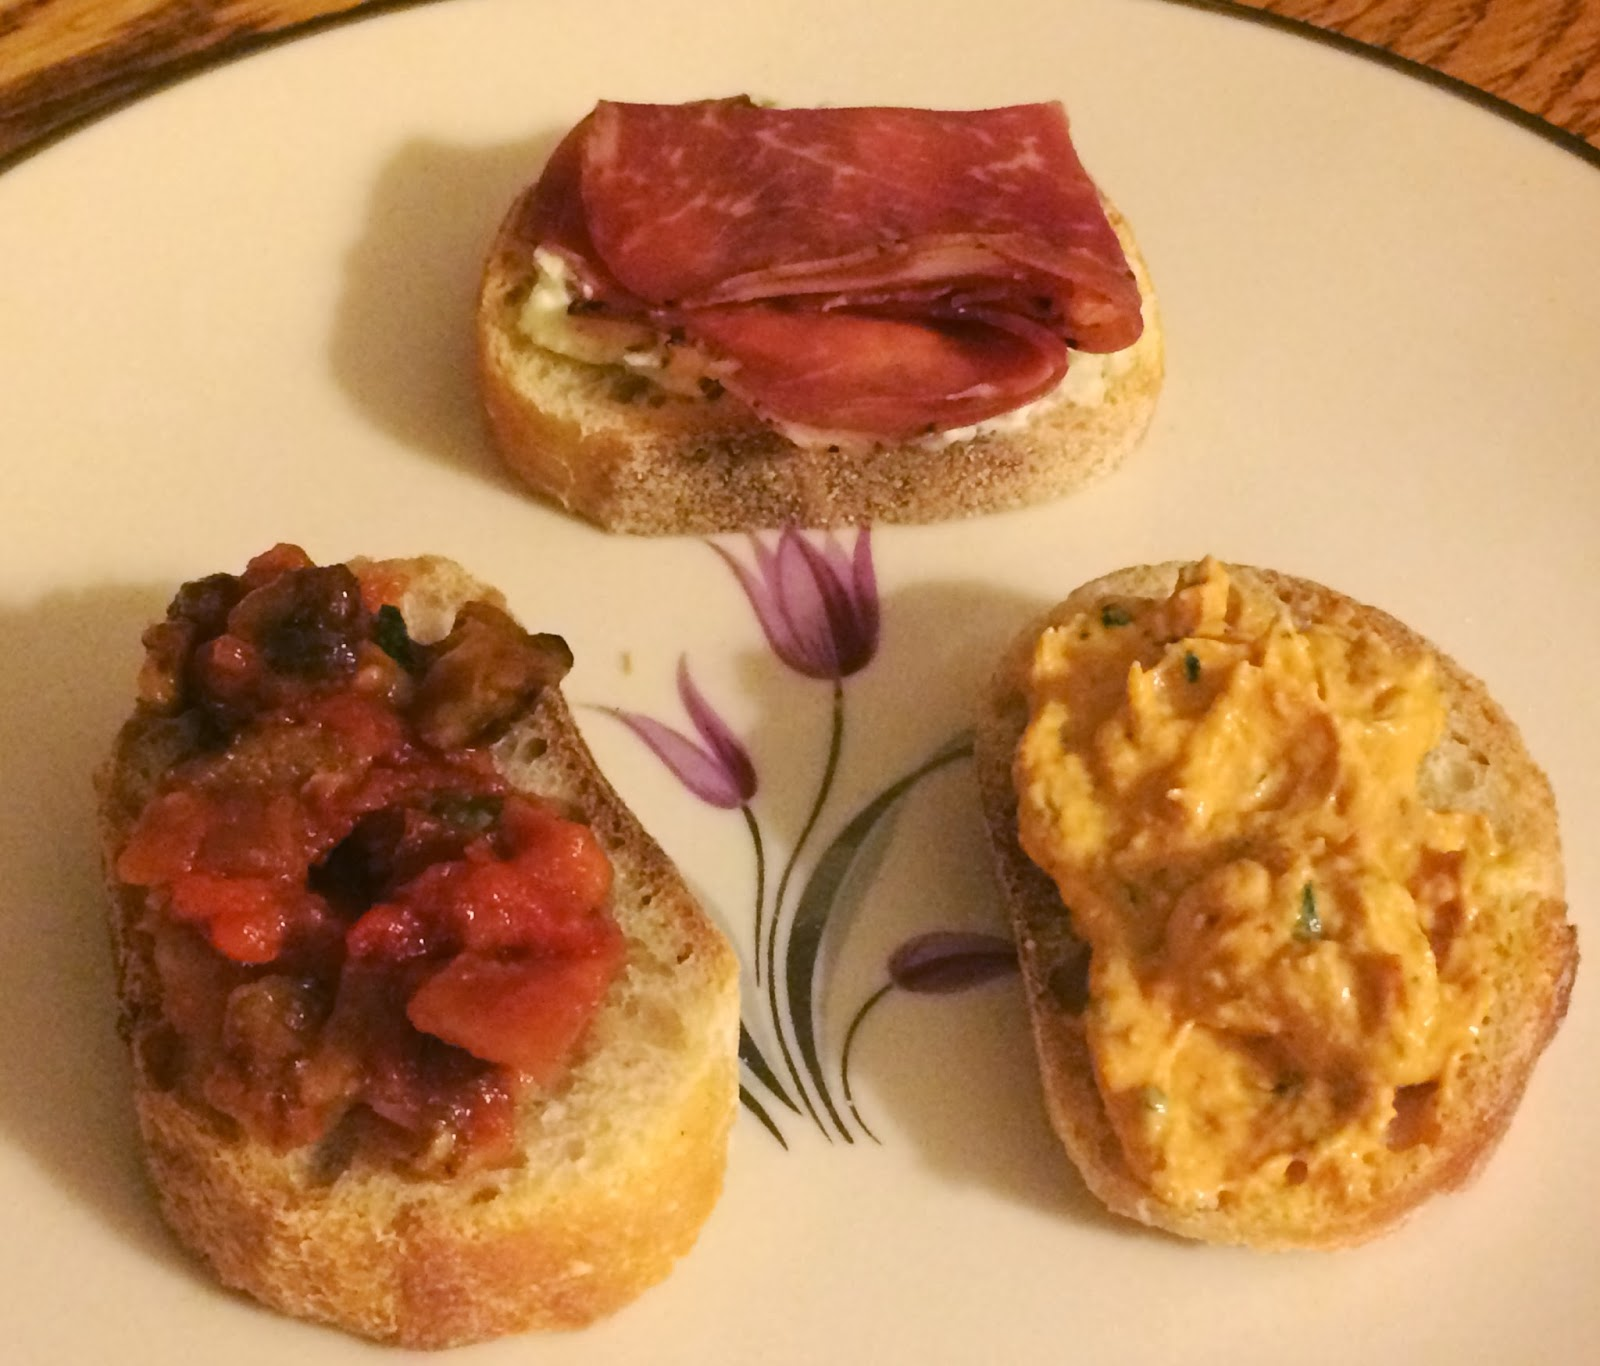 Caponata, Roasted Red Pepper Spread, Garlic Goat Cheese Spread - on warm baguette slices